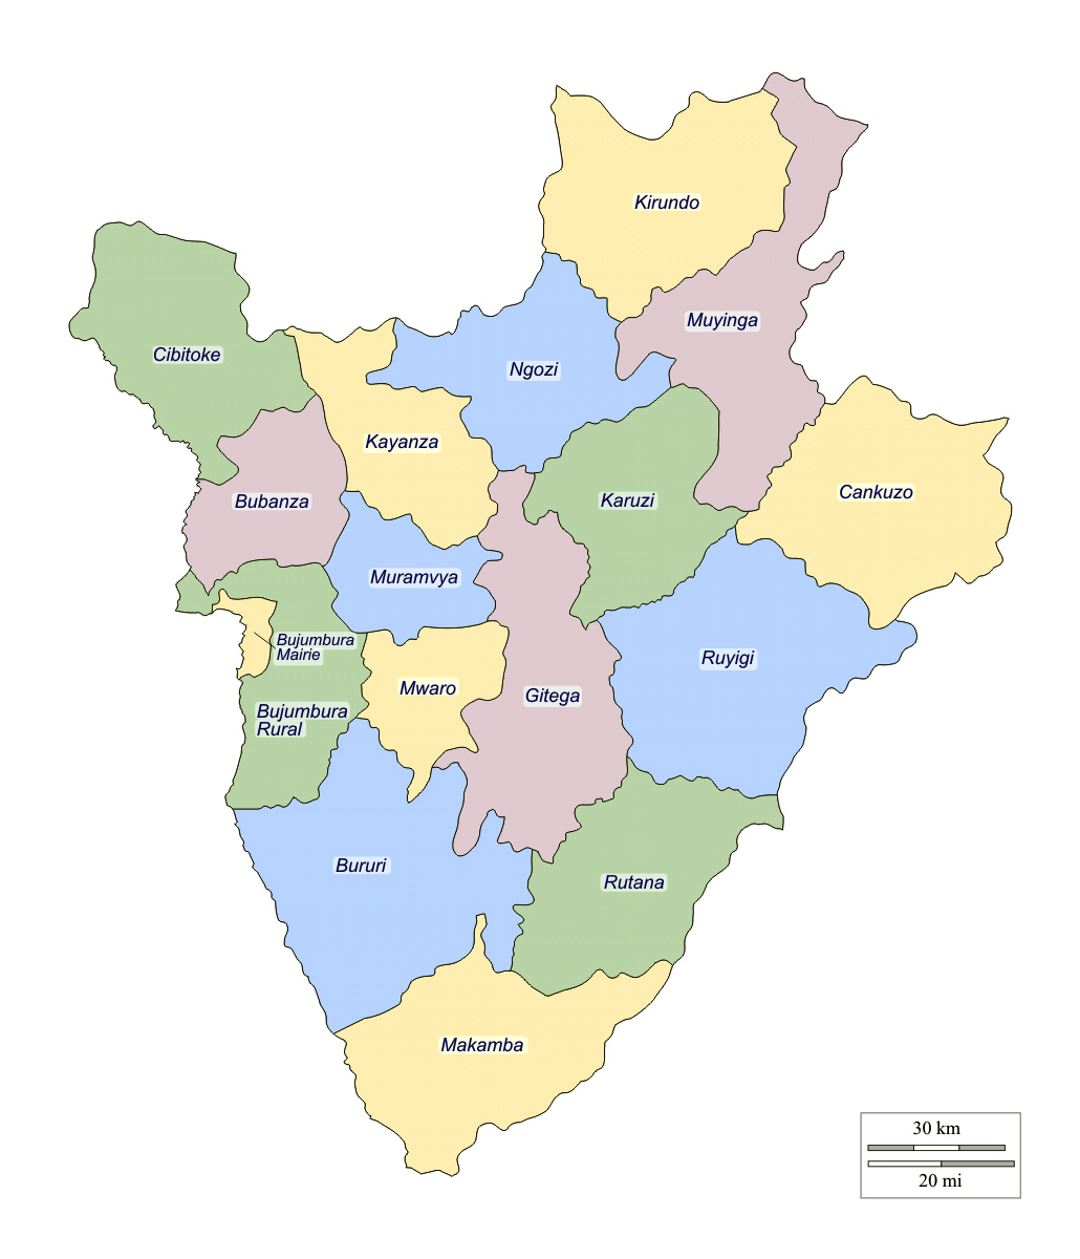 Detailed Administrative Divisions Map Of Burundi Burundi - bujumbura map